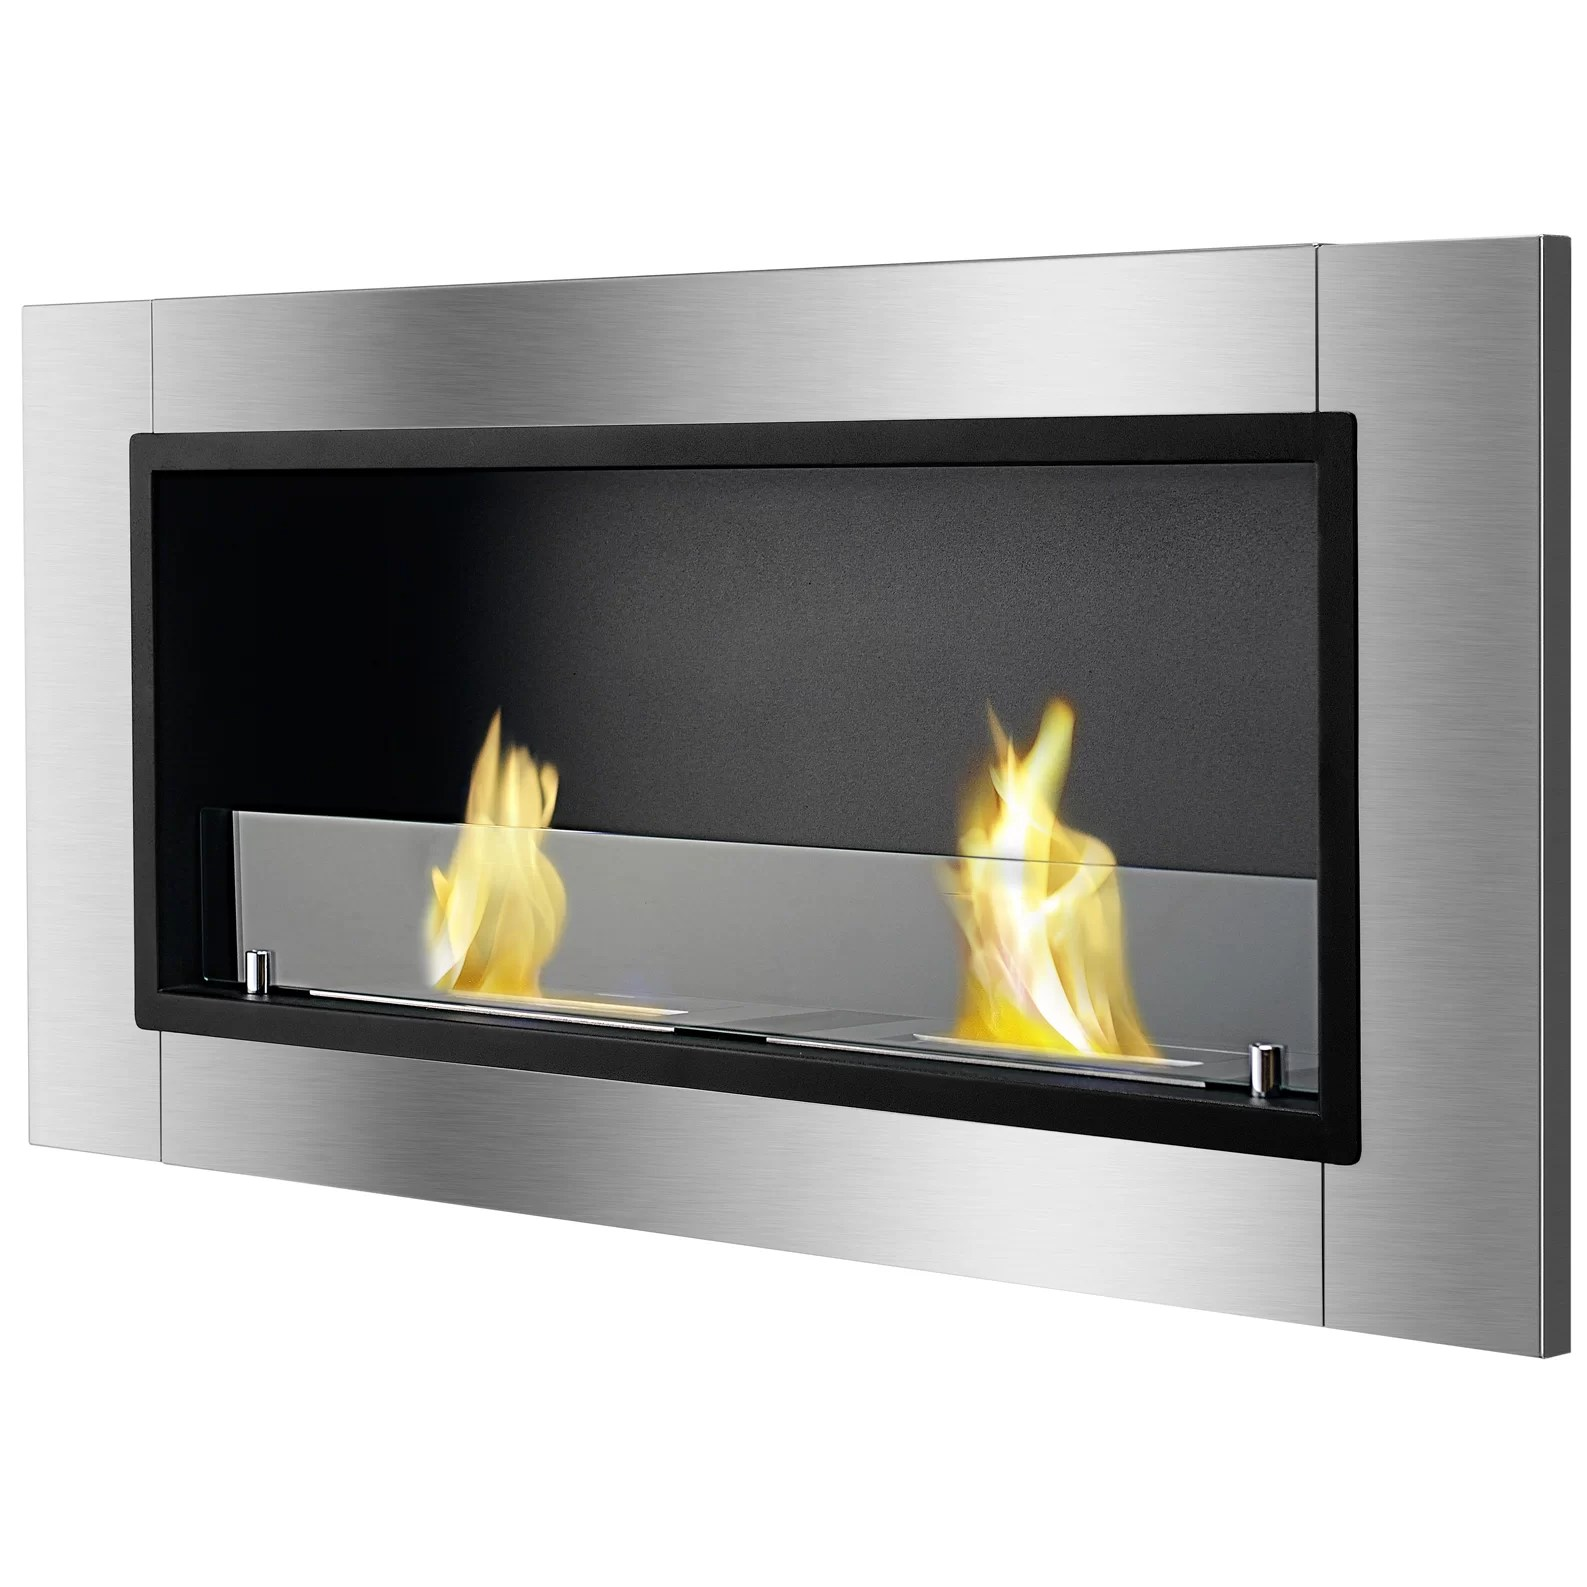 Ventless Wall Mount Gas Fireplace Ignis Lata Ventless Wall Mount Ethanol Fireplace Wayfair